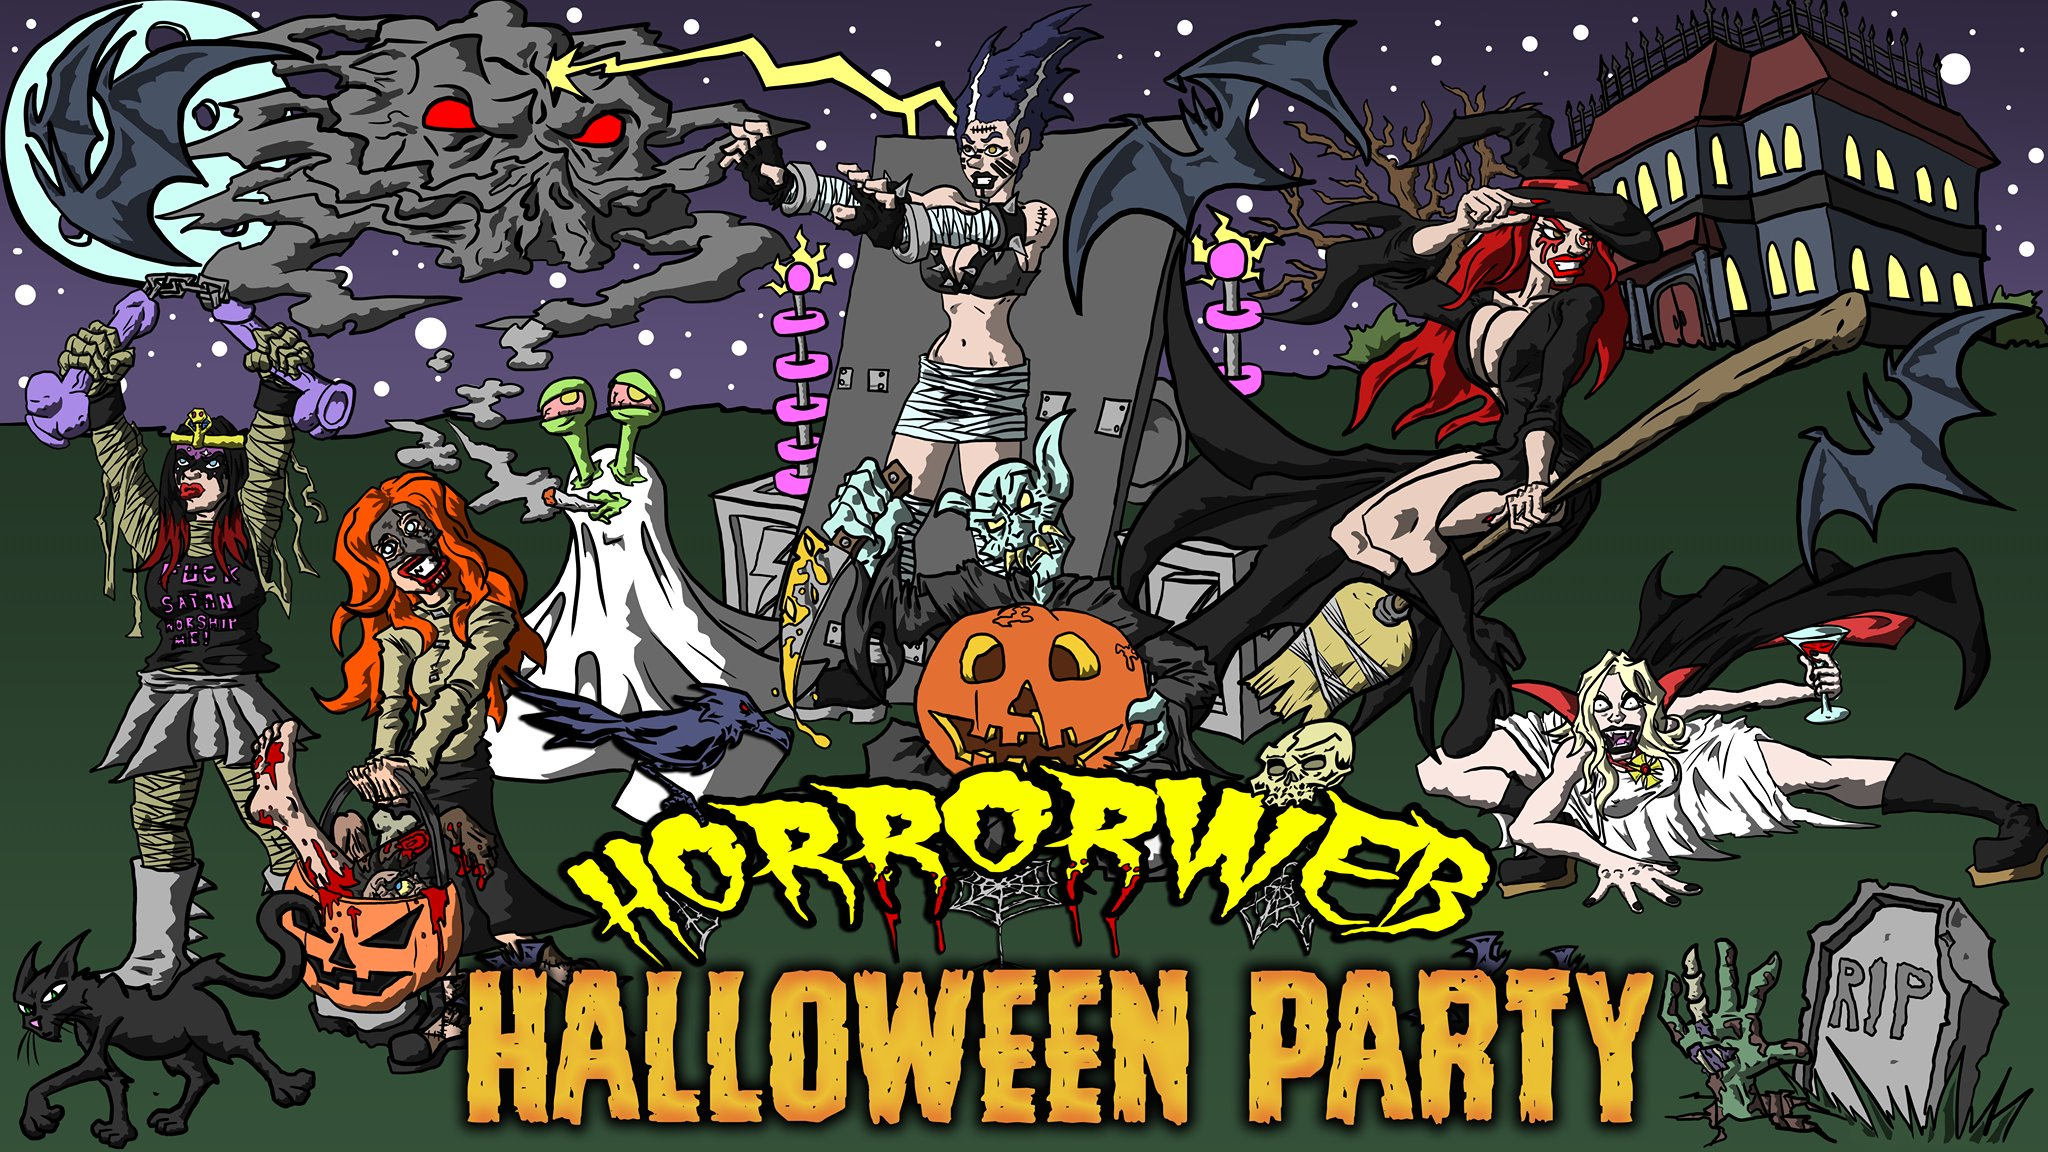 Horrorwebs Halloween Party The Darker Side Of Austin